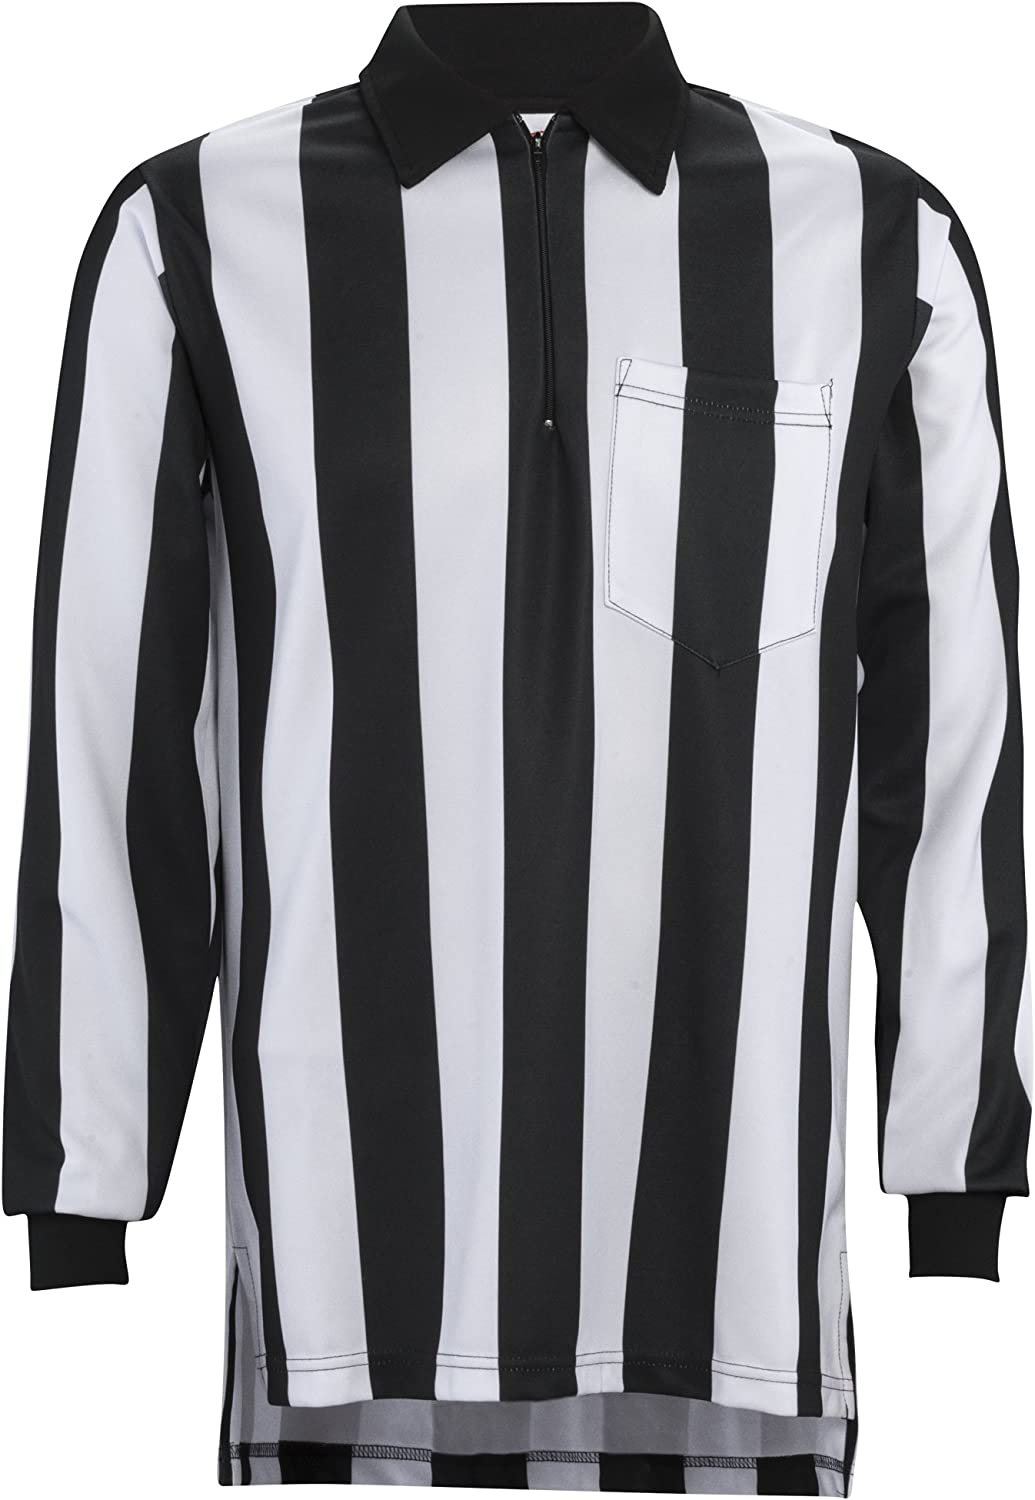 Adams Football Referee Long Max 67% OFF Sleeve Shirt 2-Inch with Black and High material W